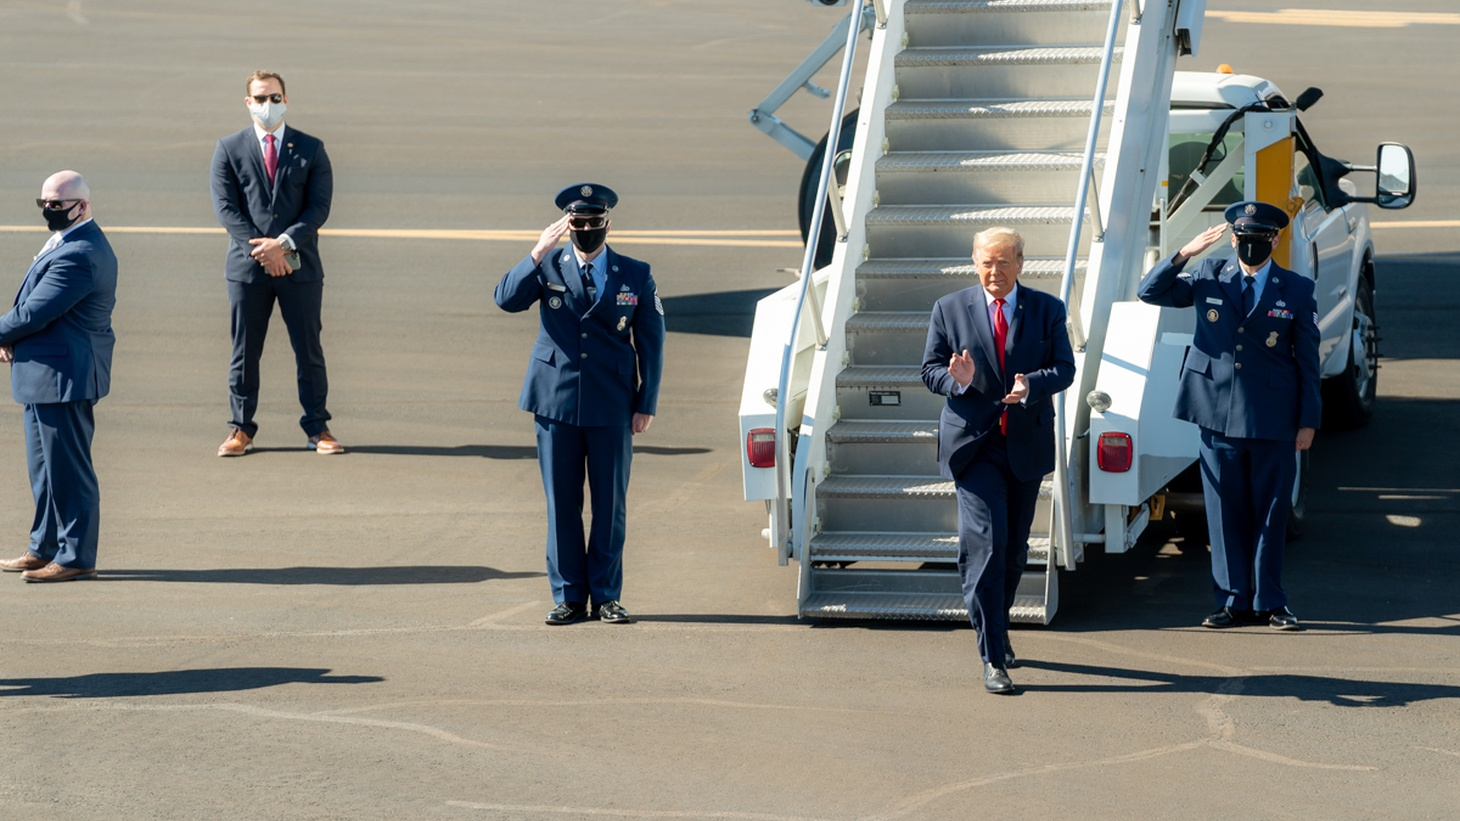 President Donald J. Trump disembarks Air Force One at Laughlin/Bullhead International Airport in Bullhead, Ariz. Wednesday, Oct. 28, 2020, and departs en route to Signature Flight Support.